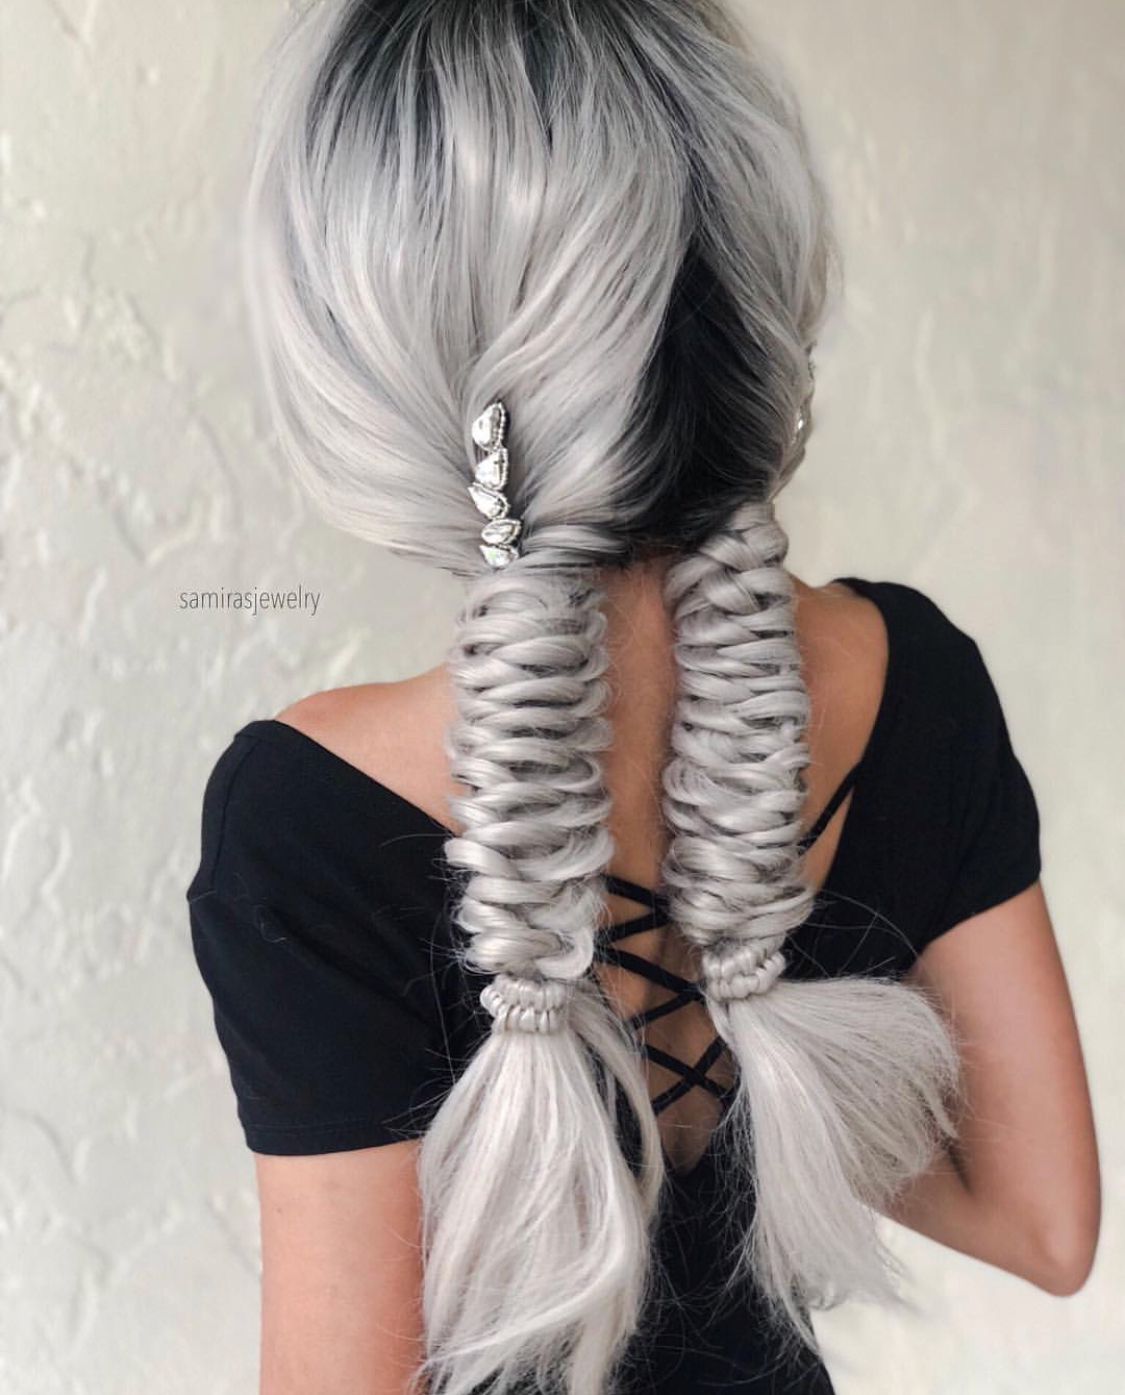 ee9432725fa2 35 Braids We Can t Stop Staring At - Behindthechair.com